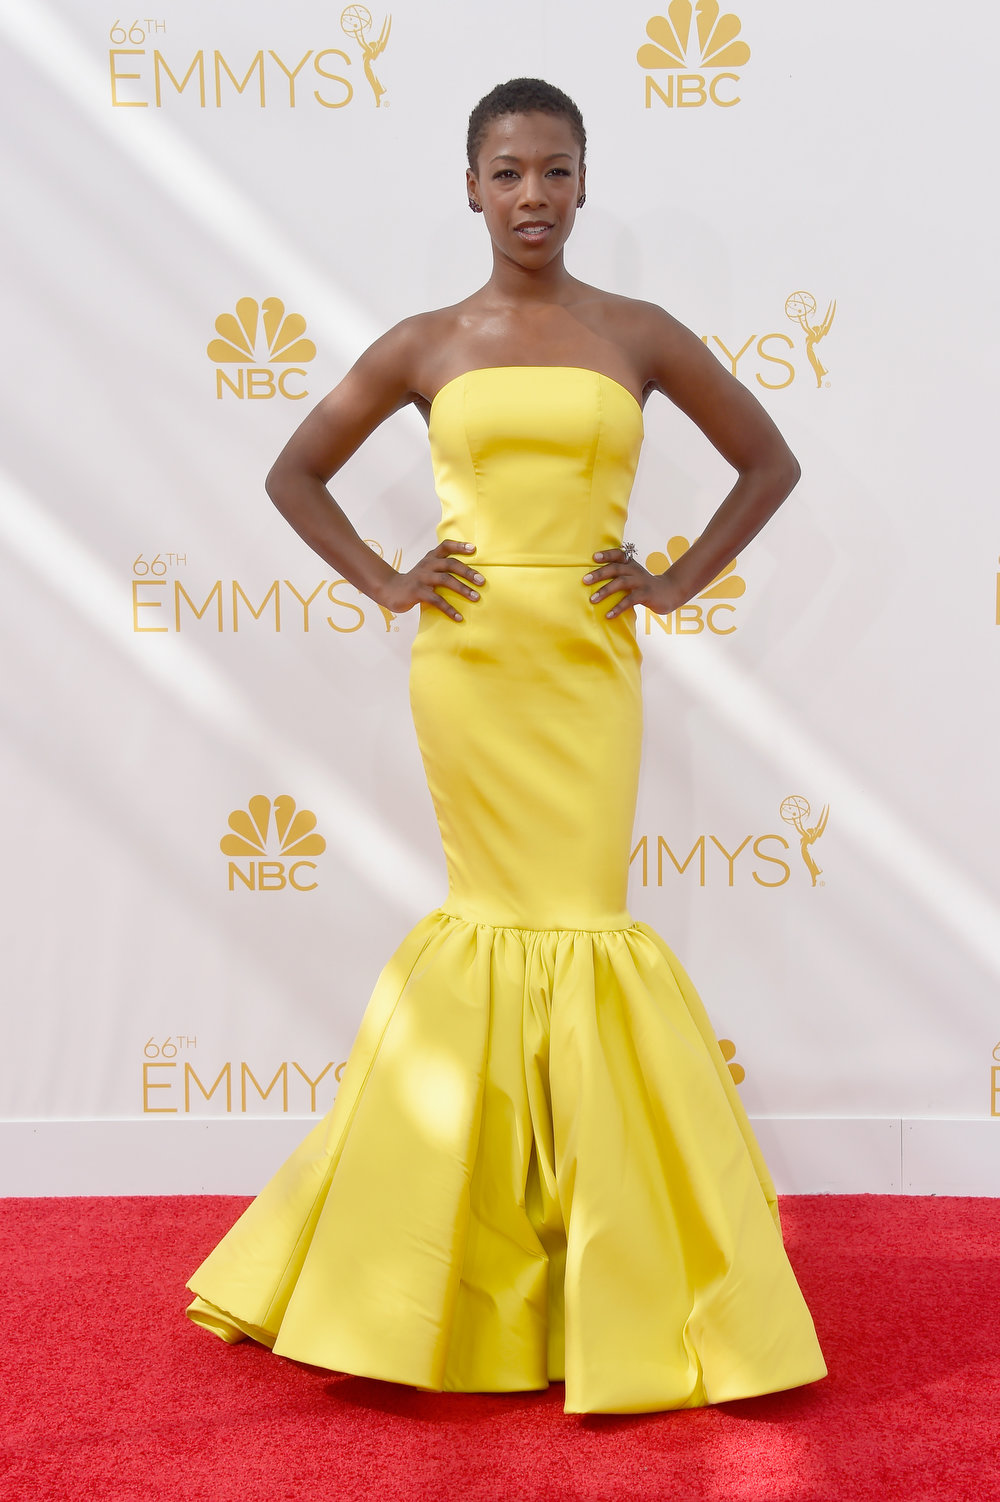 . Actress Samira Wiley attends the 66th Annual Primetime Emmy Awards held at Nokia Theatre L.A. Live on August 25, 2014 in Los Angeles, California.  (Photo by Frazer Harrison/Getty Images)